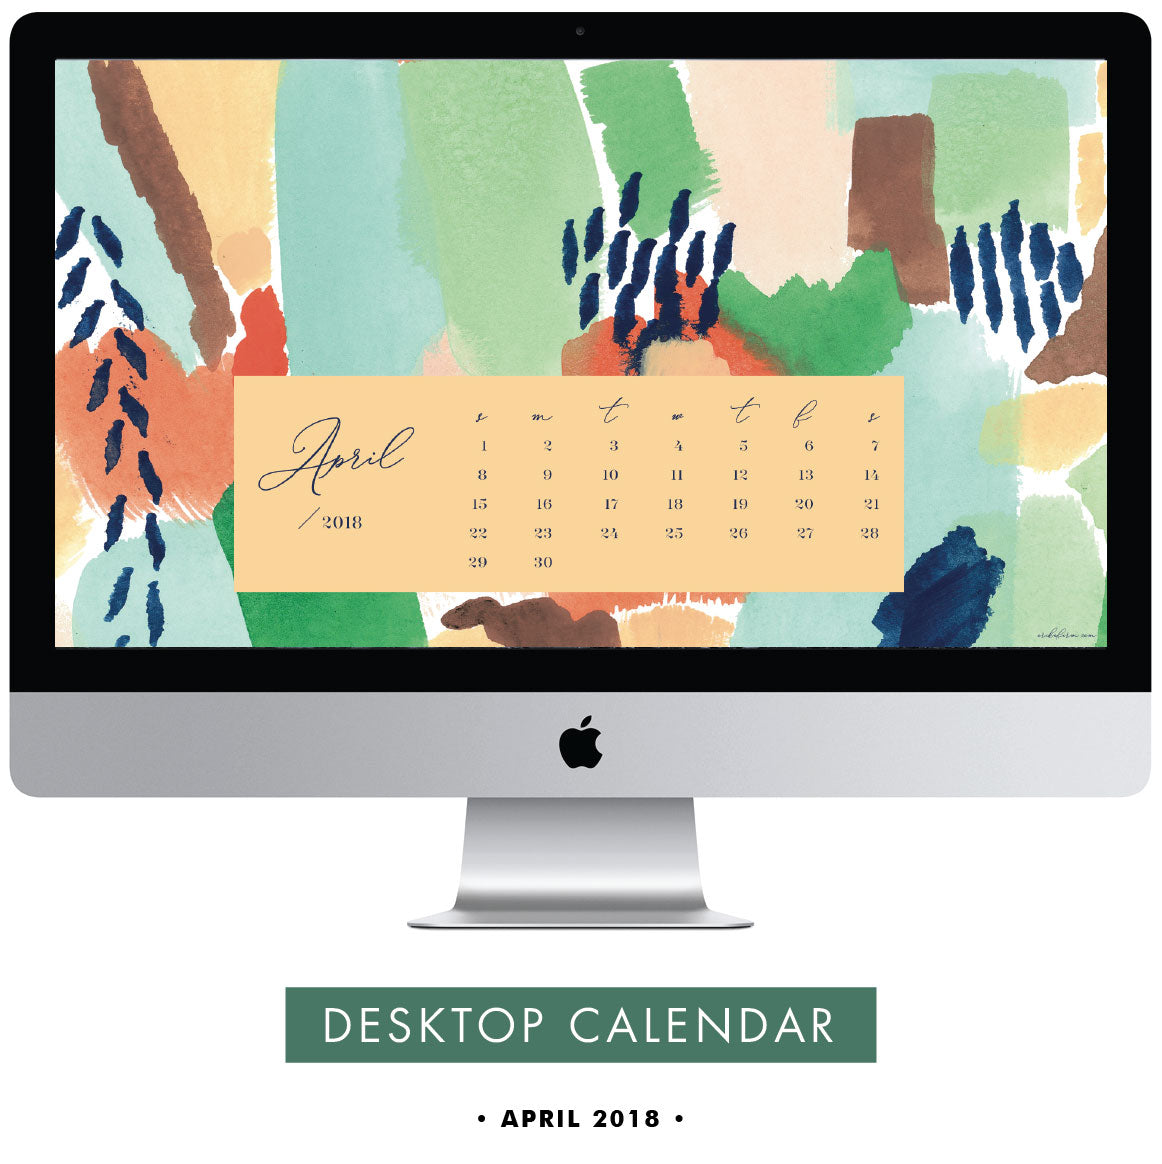 Download Free April 2018 Desktop Calendar by Erika Firm